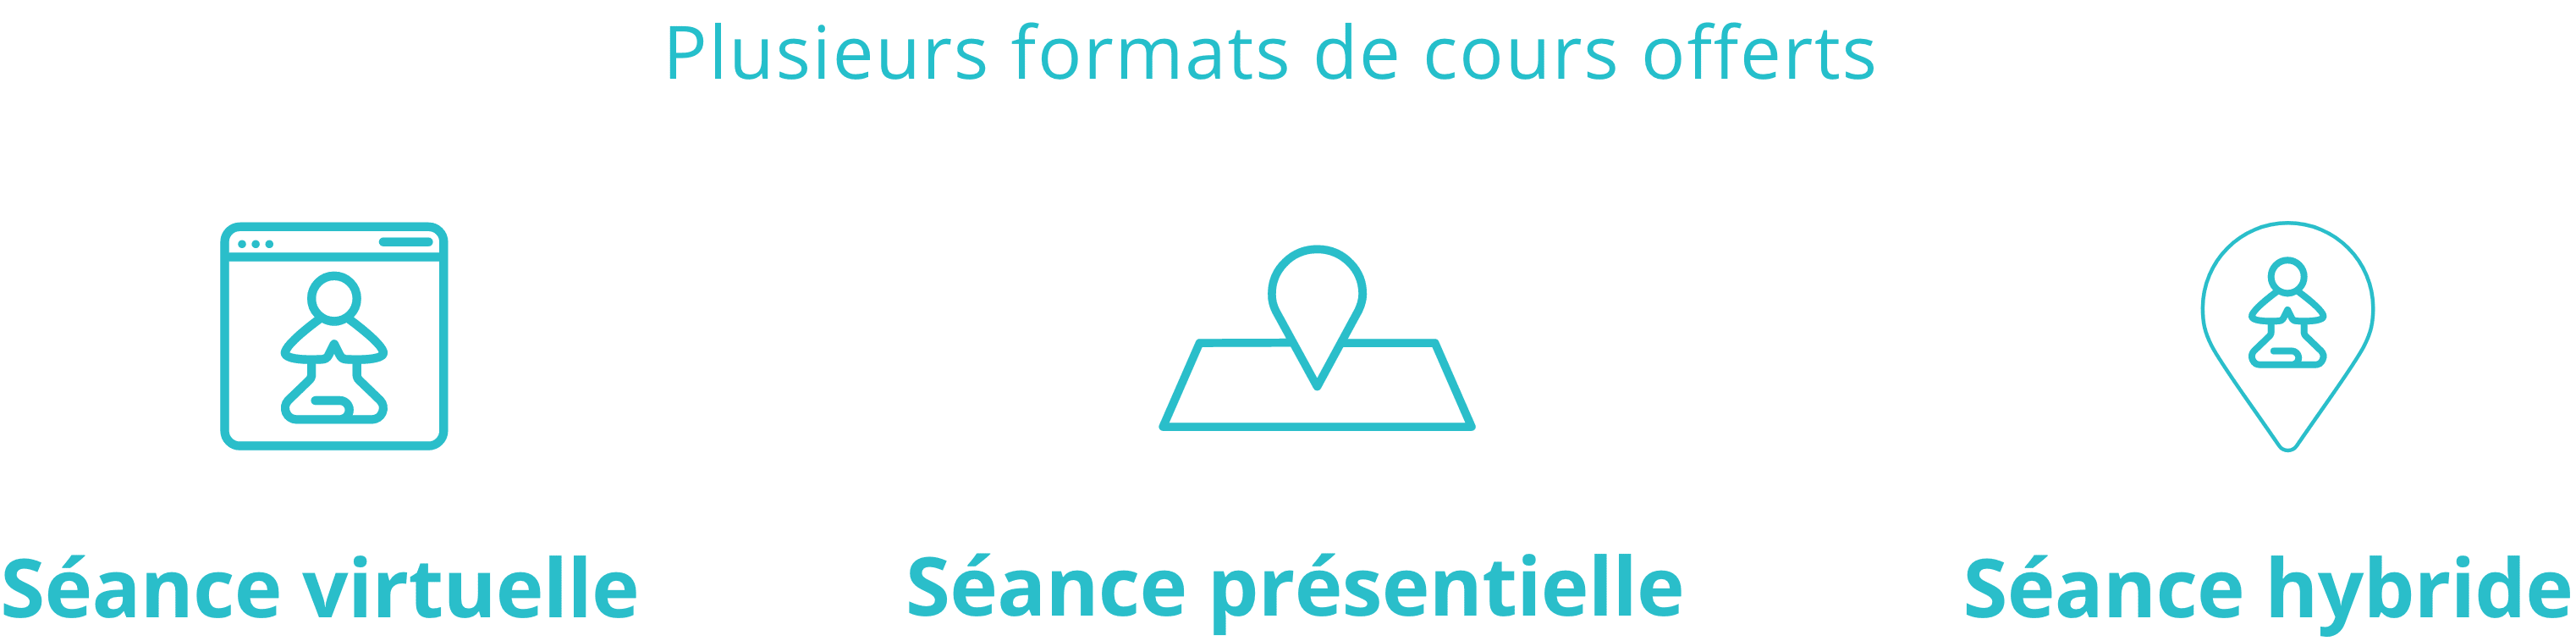 Cours offerts